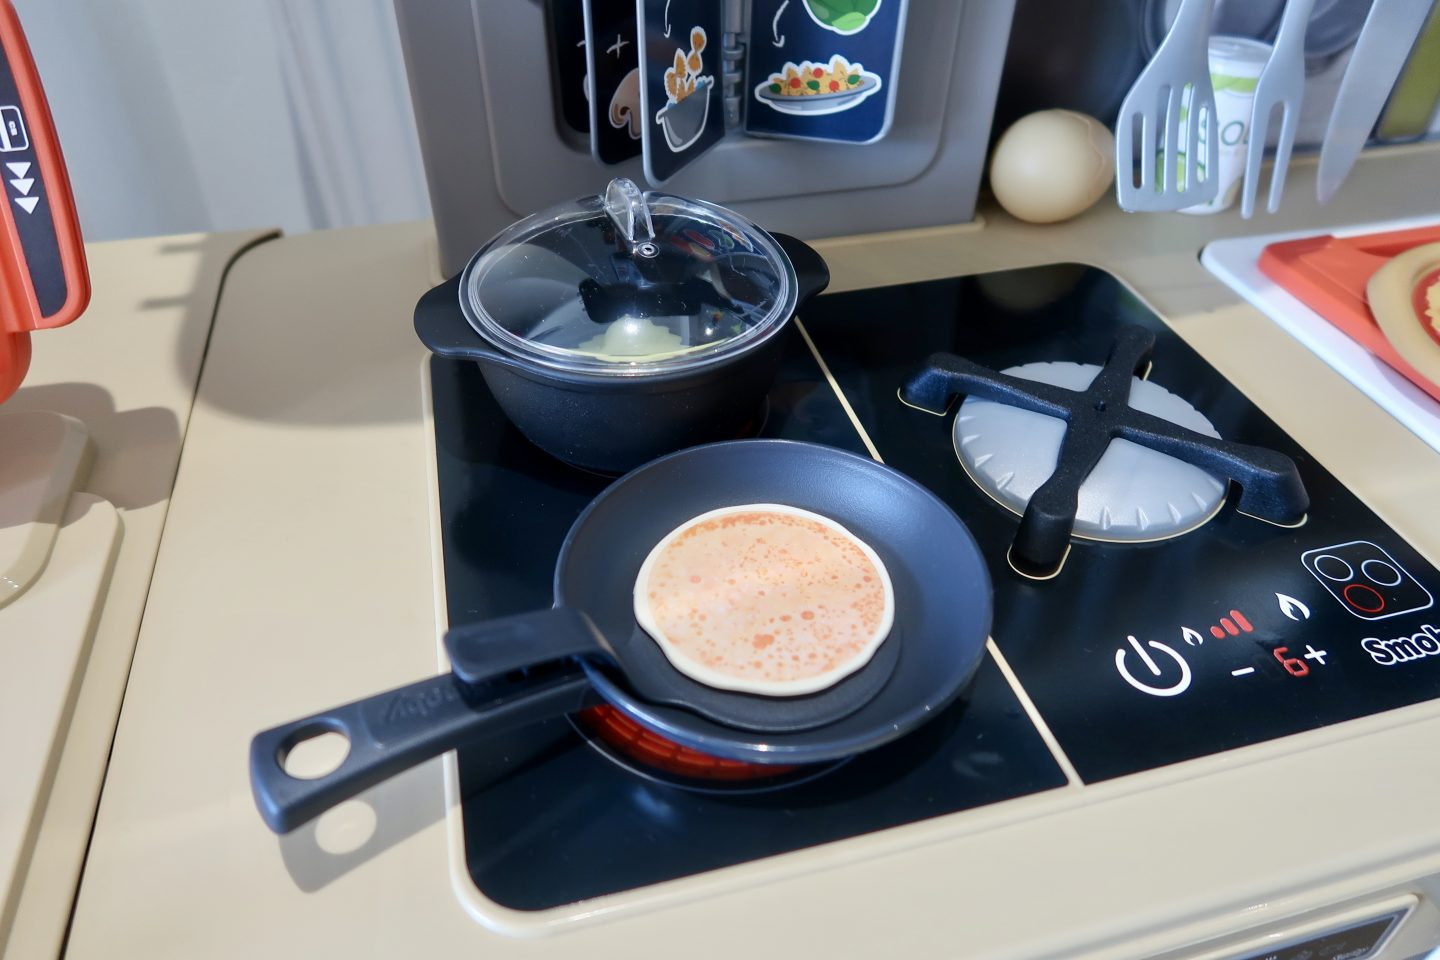 A hob on a plastic kitchen with a frying pan and saucepan on it.